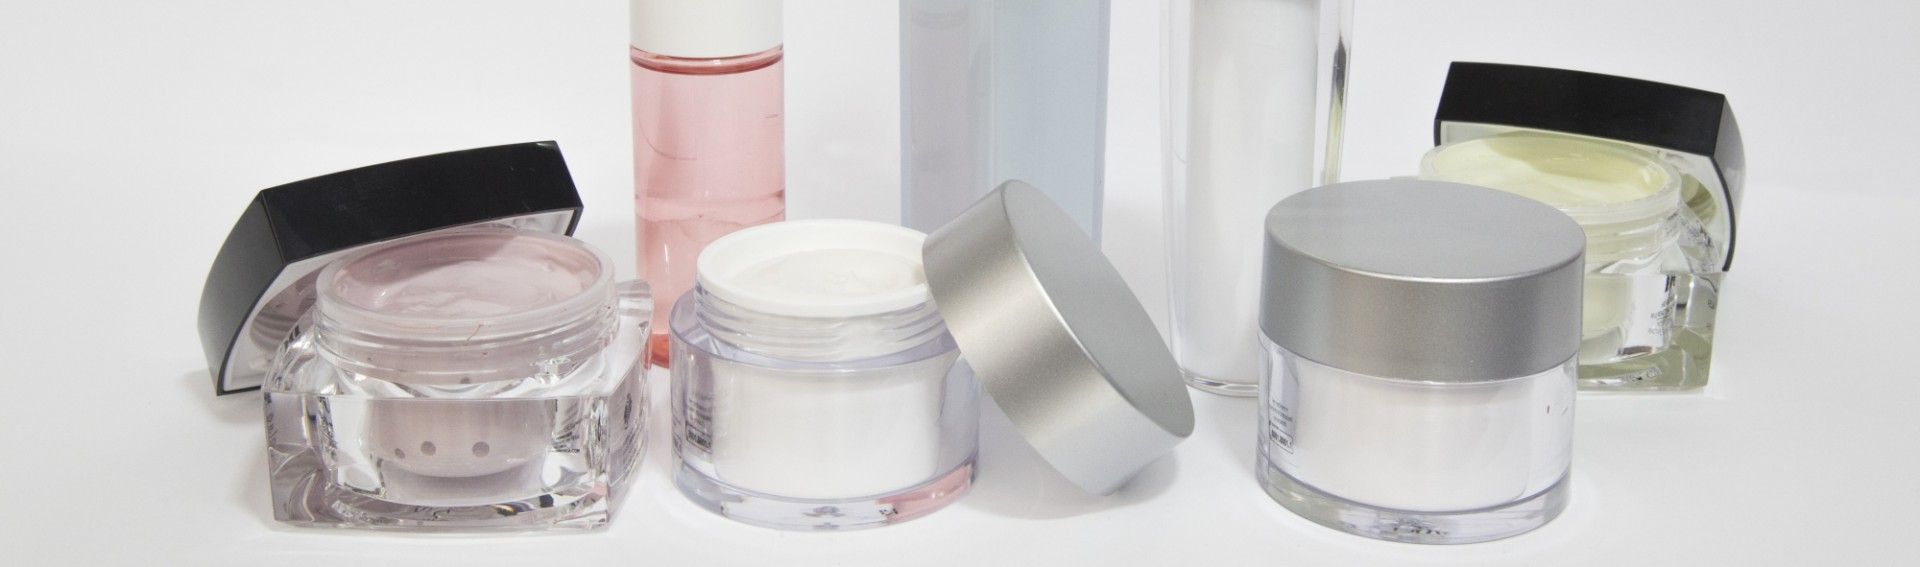 Sinerga develops and manufactures a complete range of dermo-cosmetics.